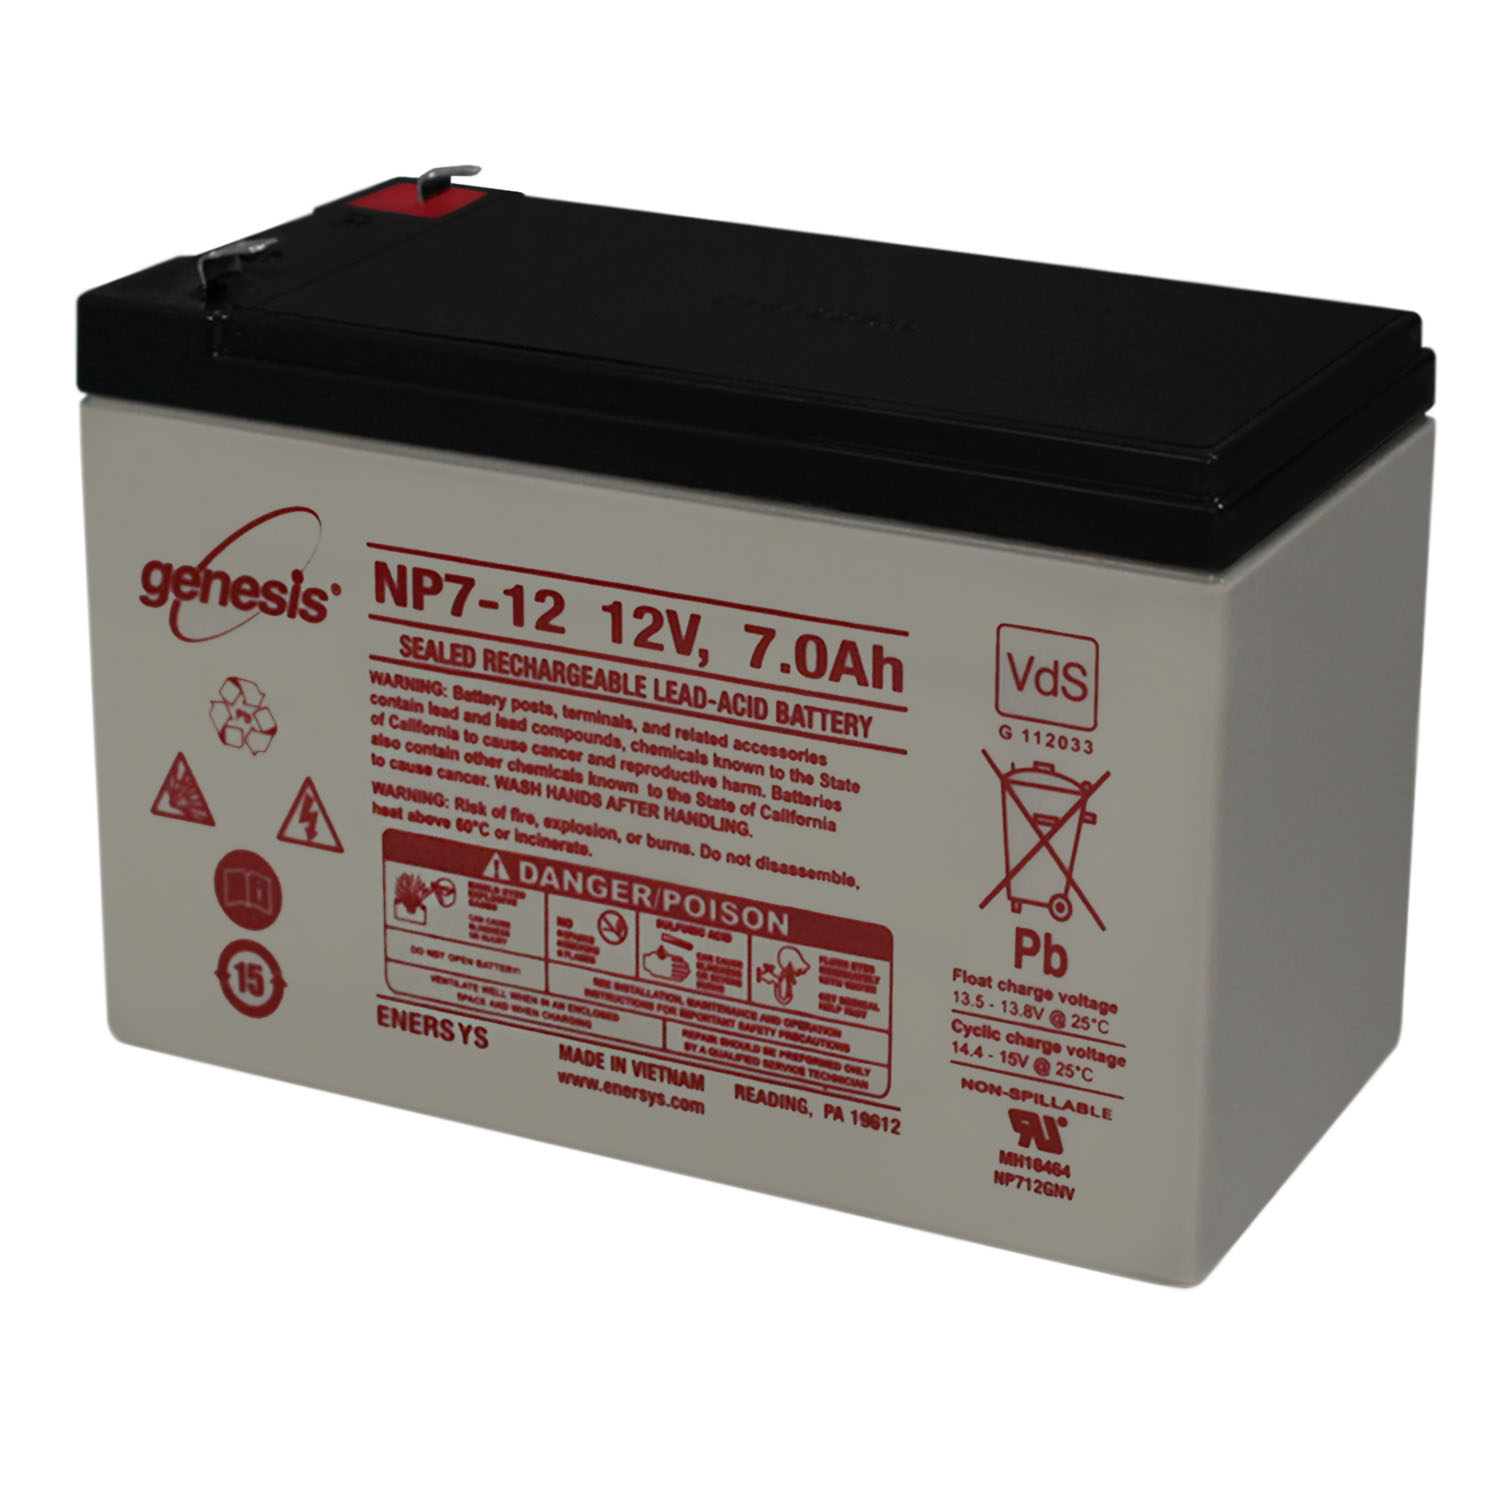 Genesis 12V 7Ah Battery Replacement for GS Portalac PXL12072